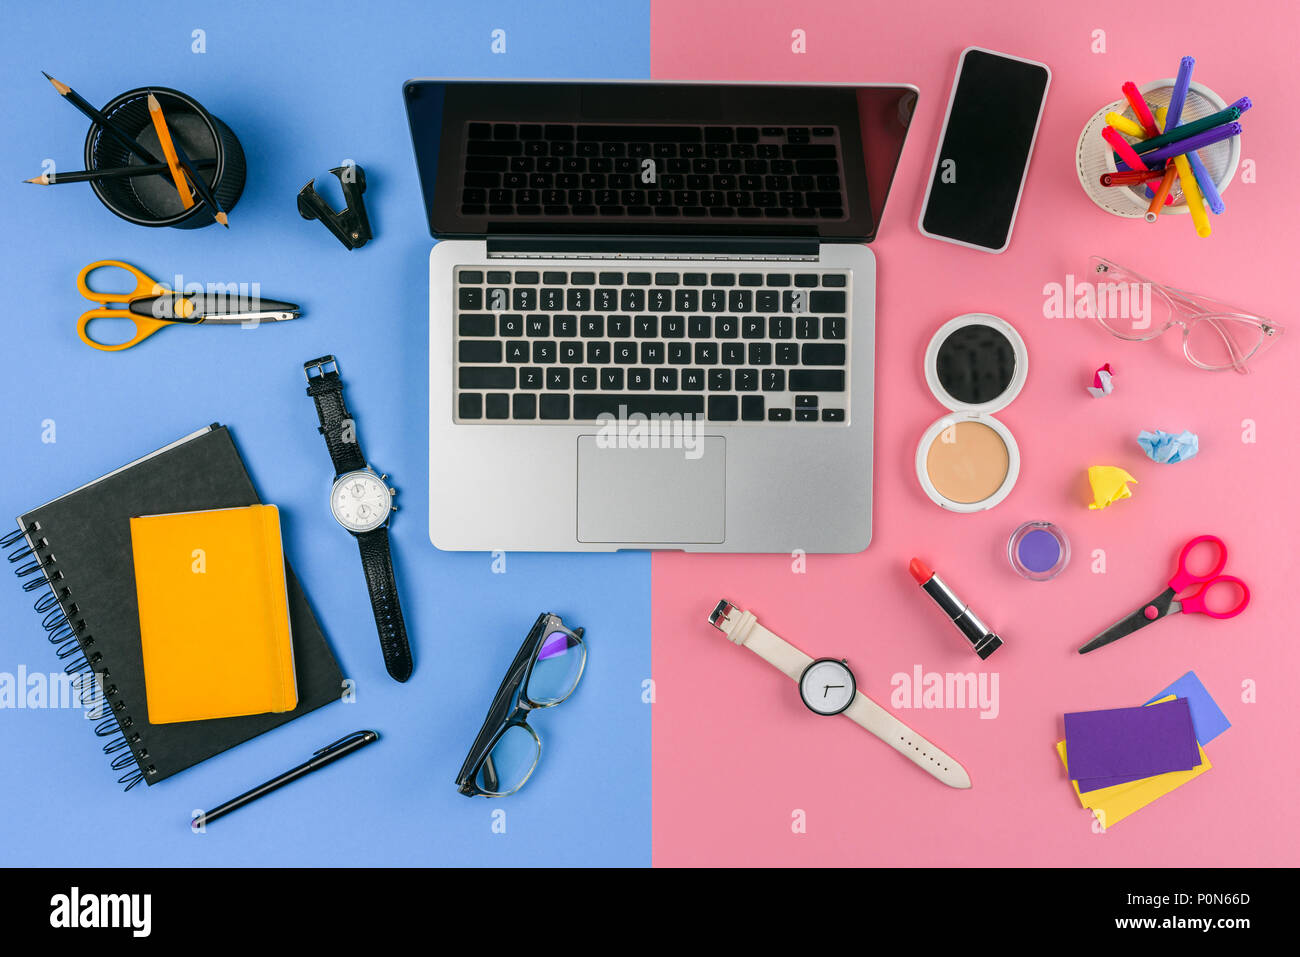 top view of laptop, smartphone and cosmetics with office supplies divided at male and female workplace - Stock Image